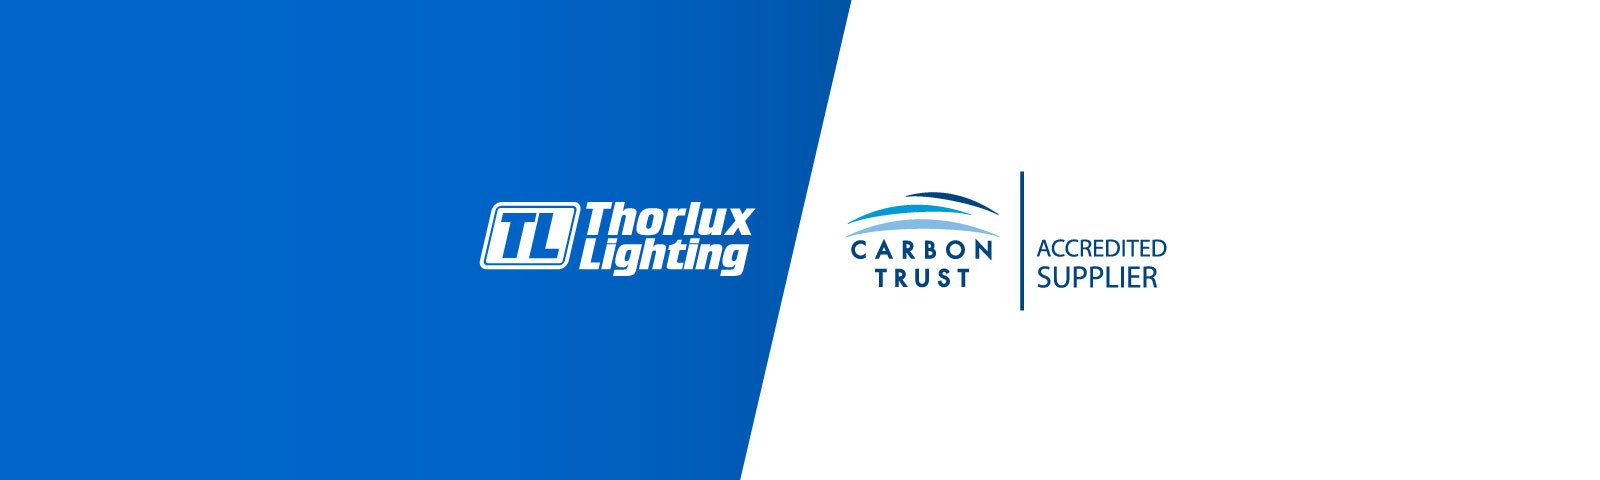 Thorlux Lighting is a Carbon Trust Accredited Supplier  gallery image